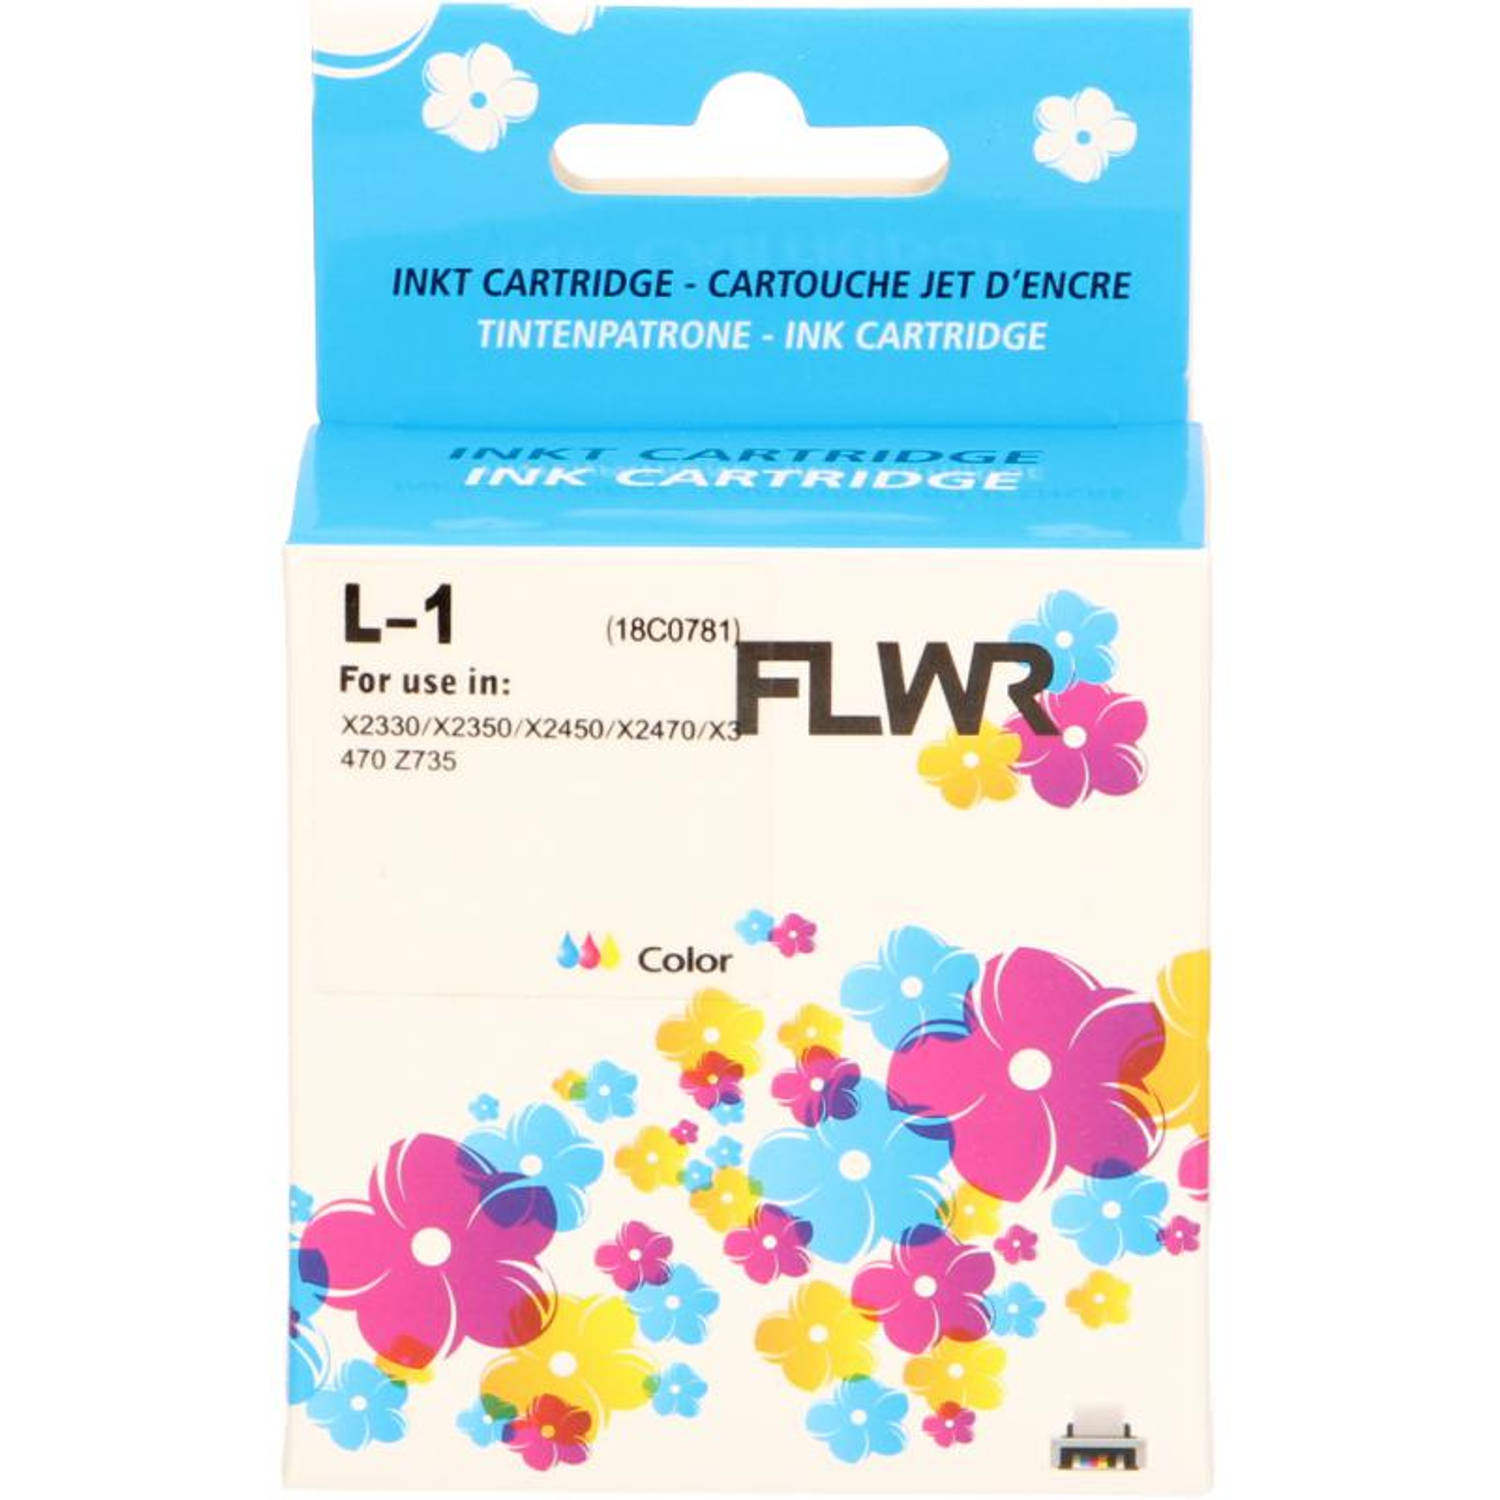 FLWR Lexmark 1 kleur Cartridge